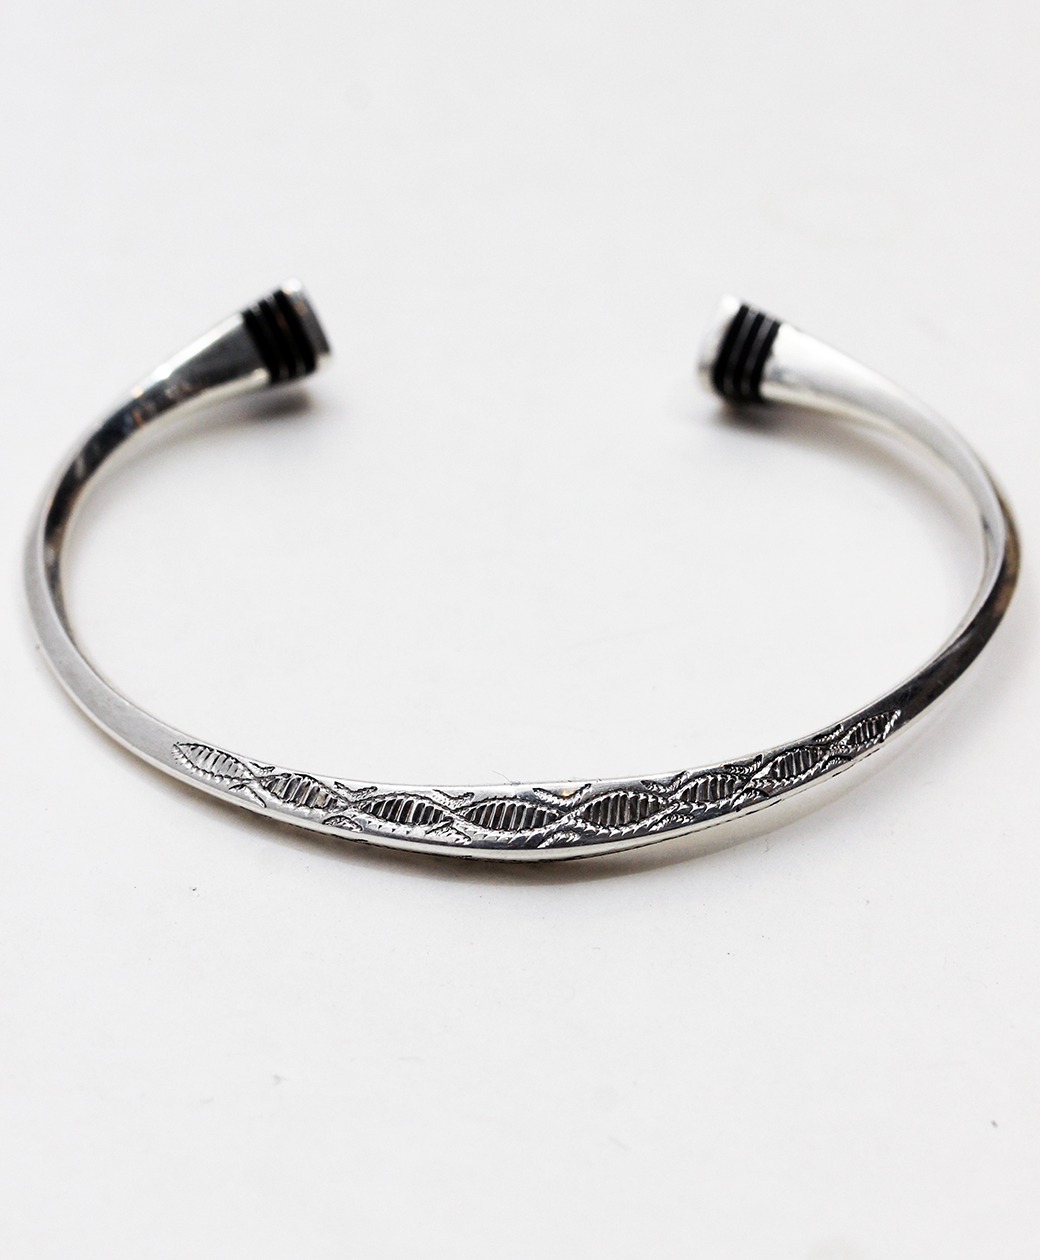 TUAREG SILVER JEWELRY BANGLE(D)